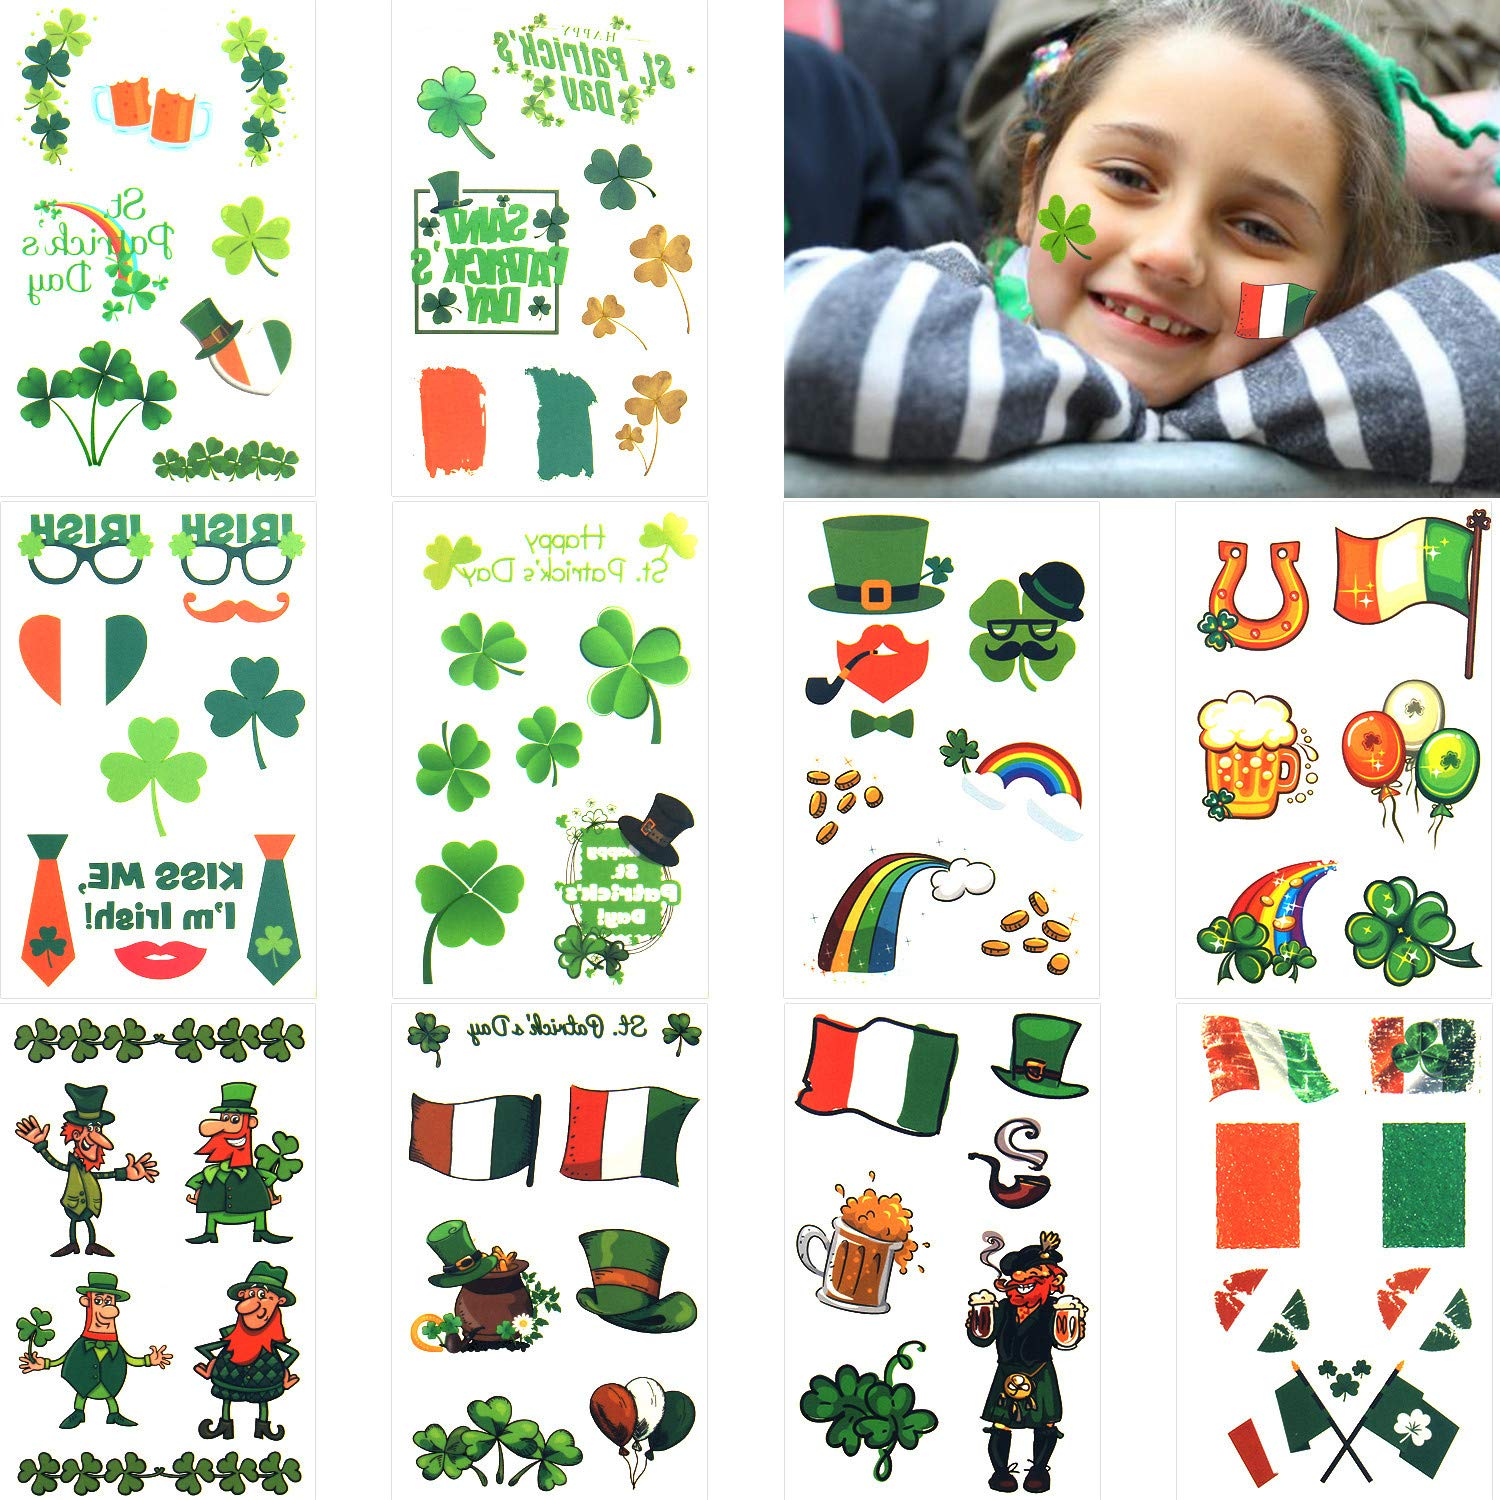 St. Patrick's Day Stickers – 10 Sheets St. Patrick's Day Tattoos Shamrock Temporary Tattoos Stickers Shamrock Stickers for Kids Party Decoration